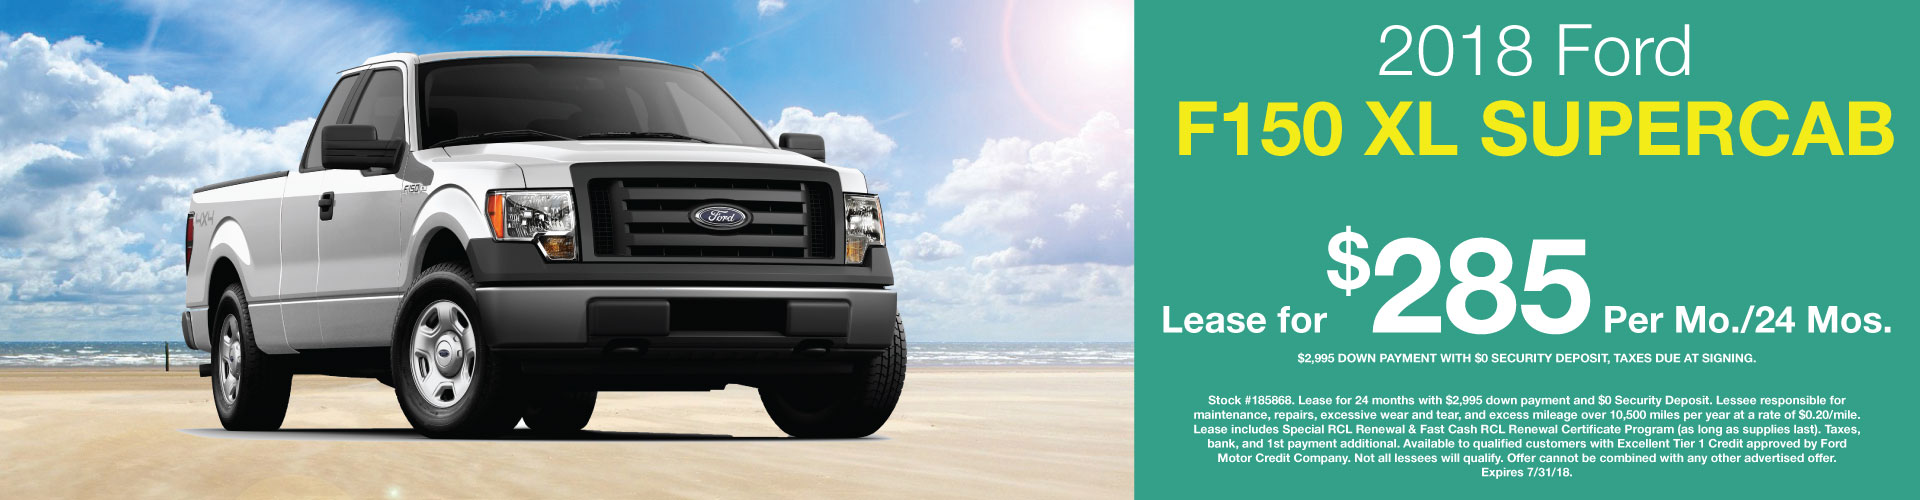 2018 Ford F-150 lease special